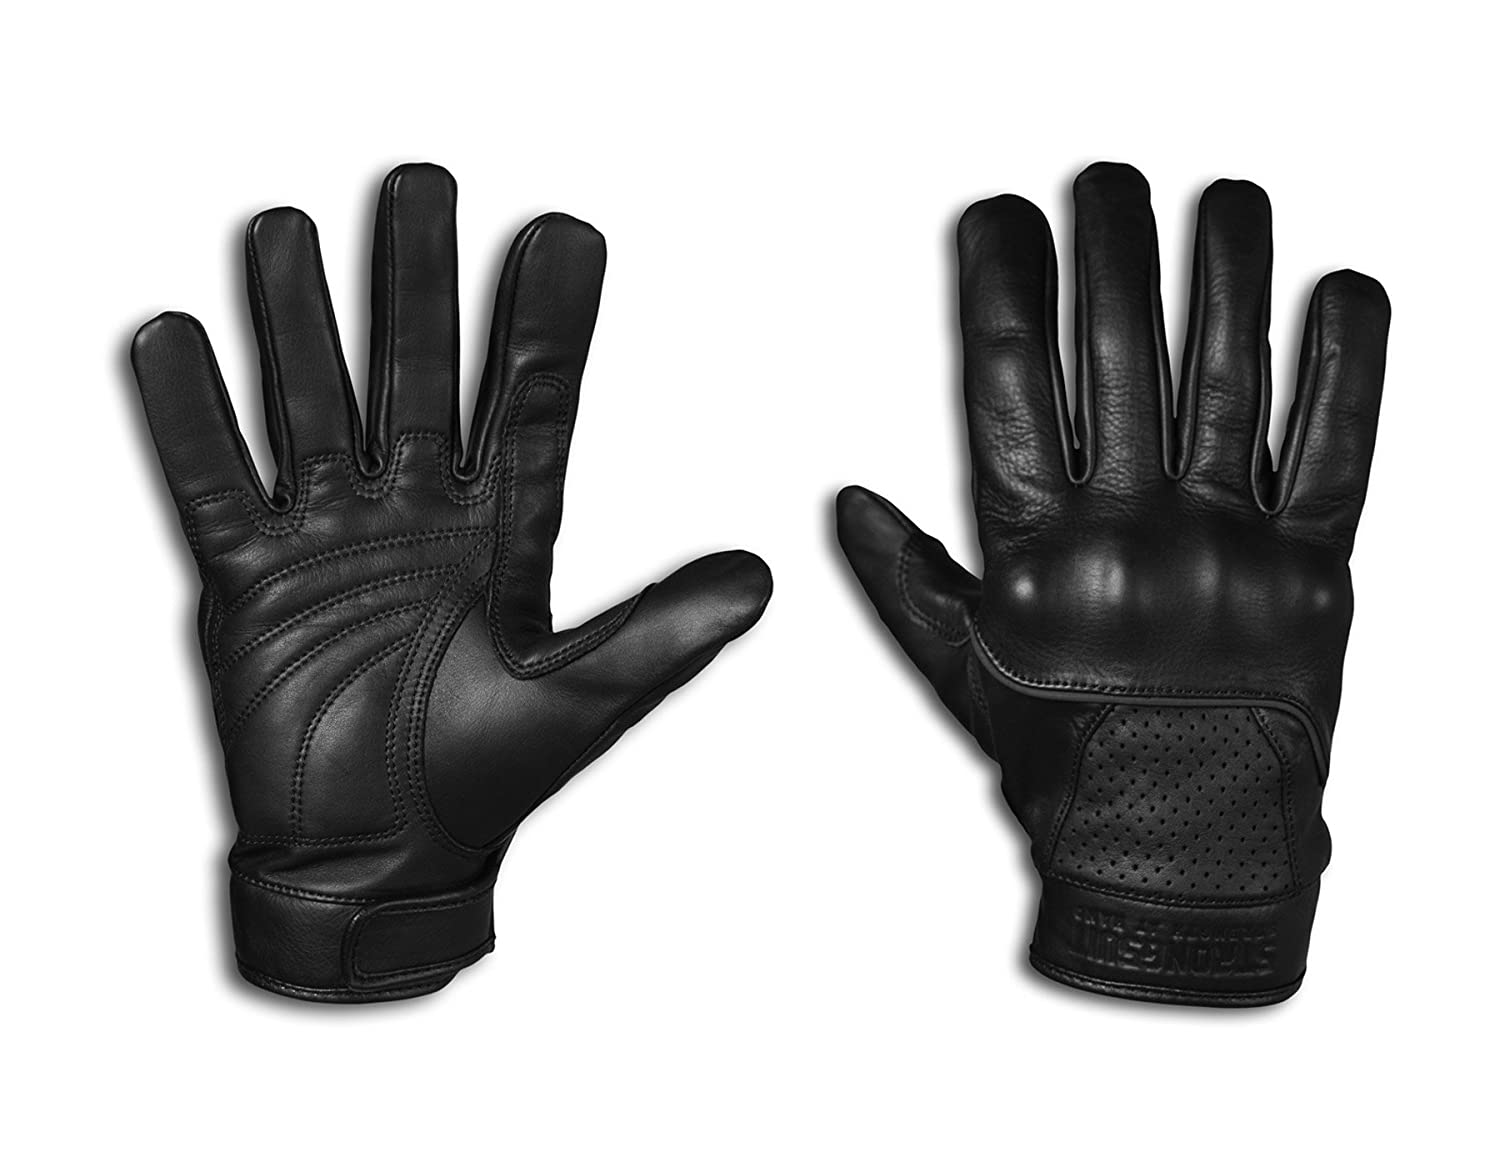 Motorcycle gloves ratings - Strongsuit 20300 L Voyager Leather Motorcycle Gloves